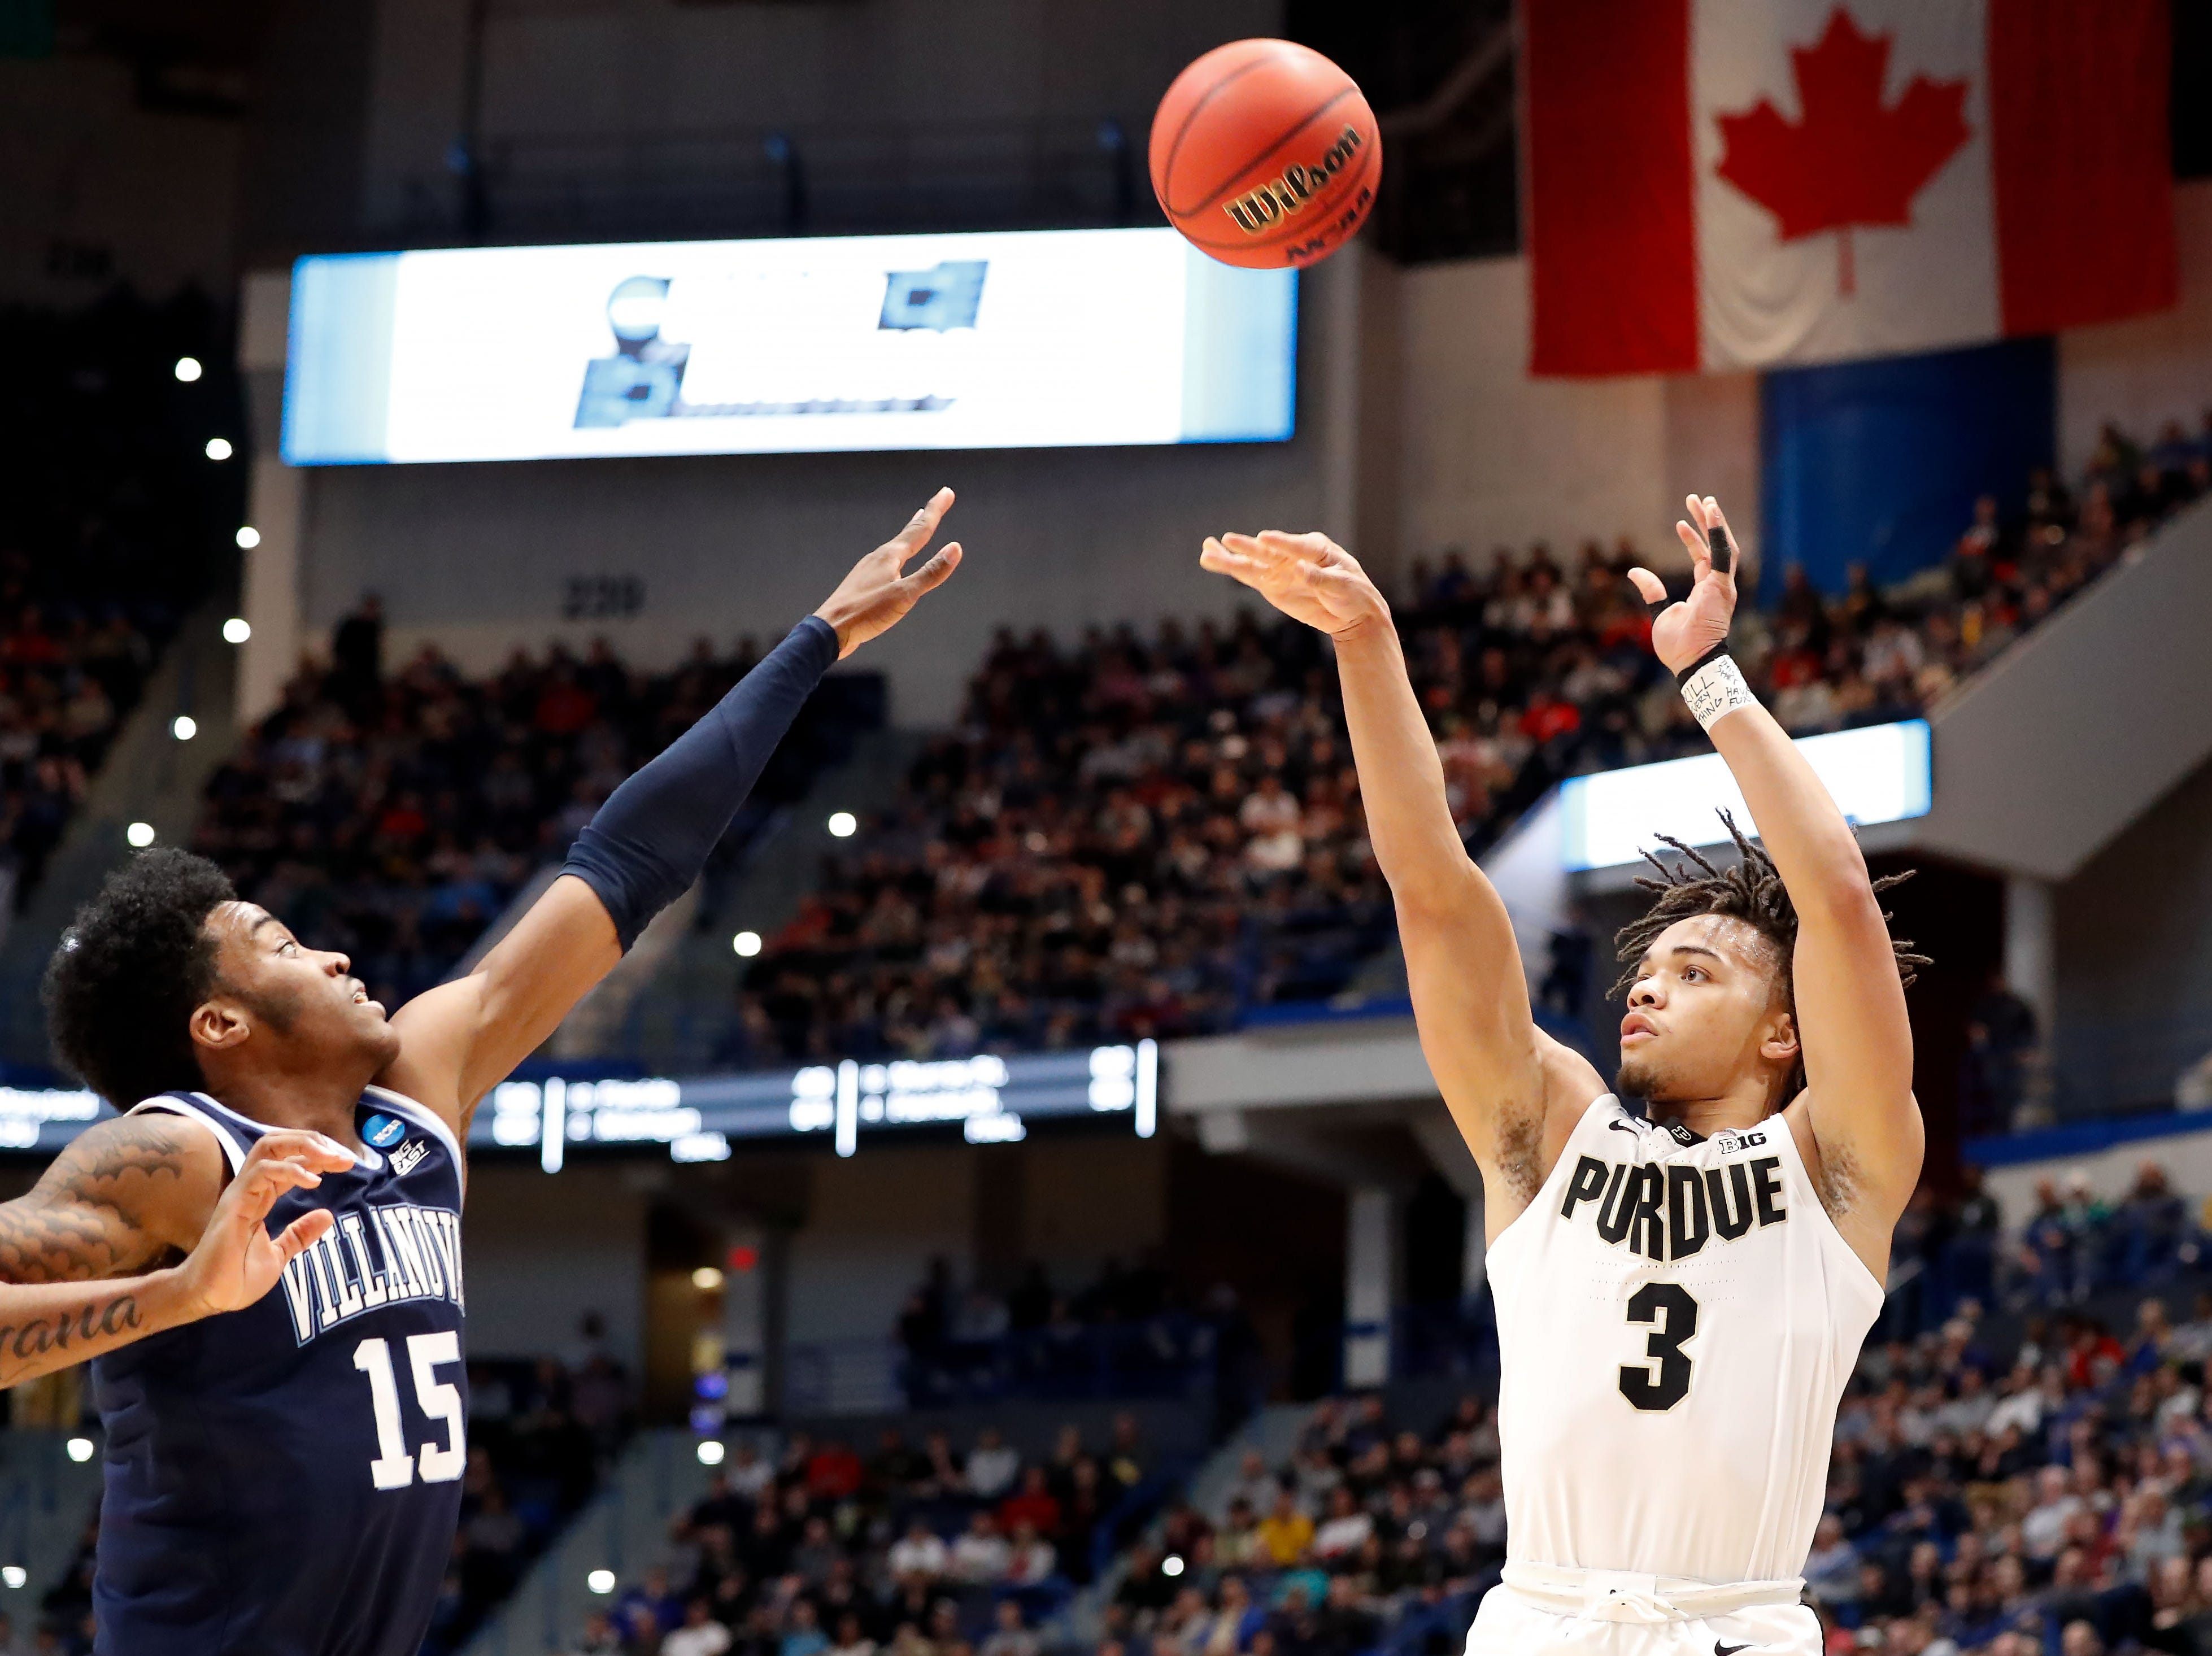 Mar 23, 2019; Hartford, CT, USA; Purdue Boilermakers guard Carsen Edwards (3) attempt a shot over Villanova Wildcats forward Saddiq Bey (15) during the first half of a game in the second round of the 2019 NCAA Tournament at XL Center. Mandatory Credit: David Butler II-USA TODAY Sports